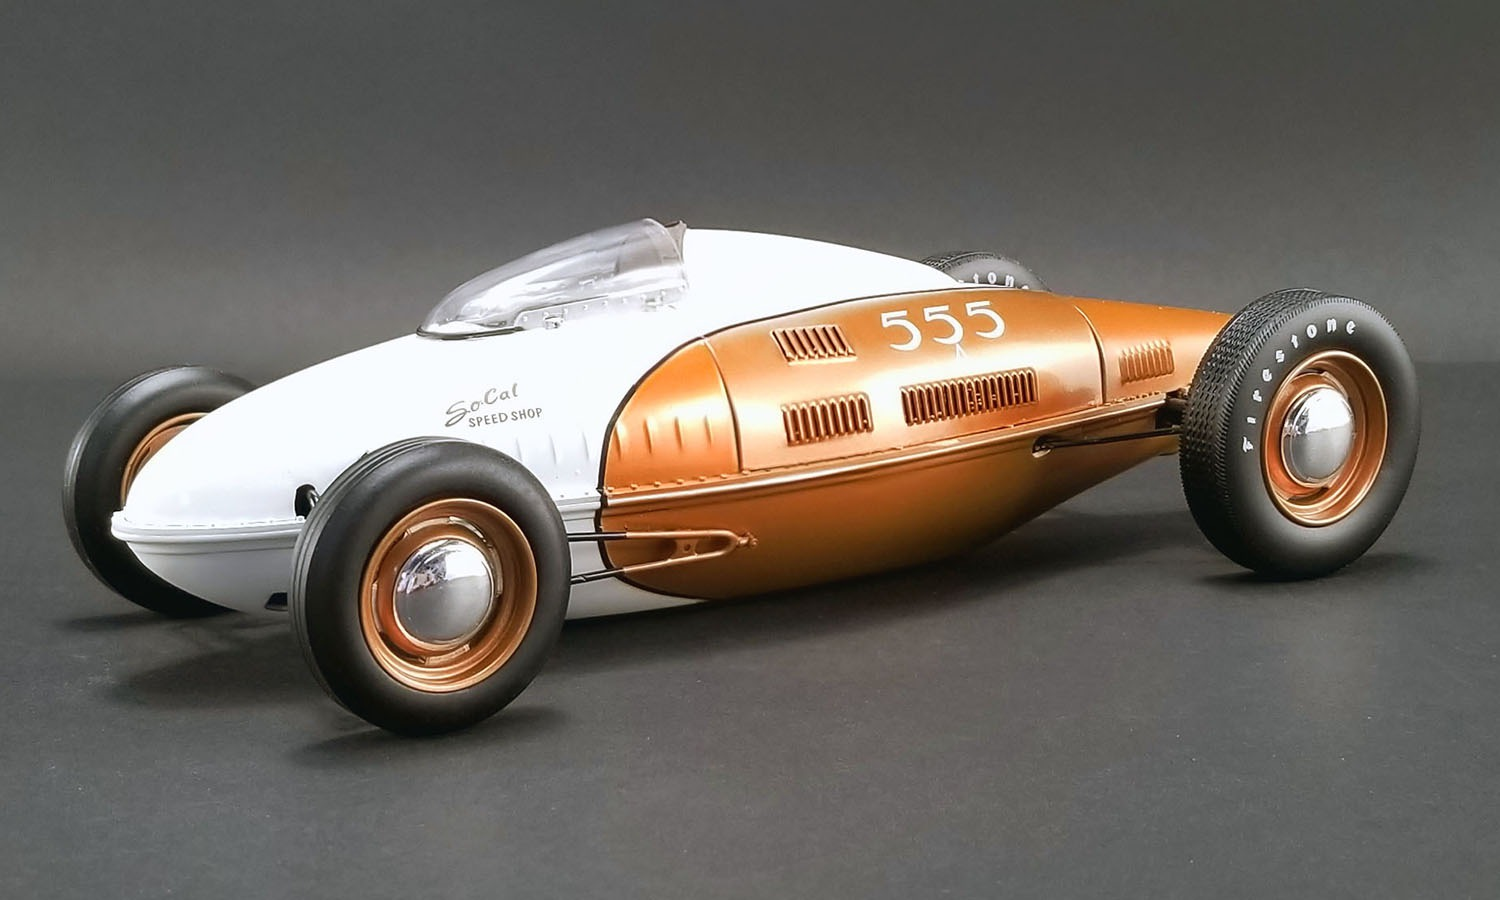 ACME 1/18 So Cal Speed Shop *555* Belly Tanker with all New Wheel Tooling.